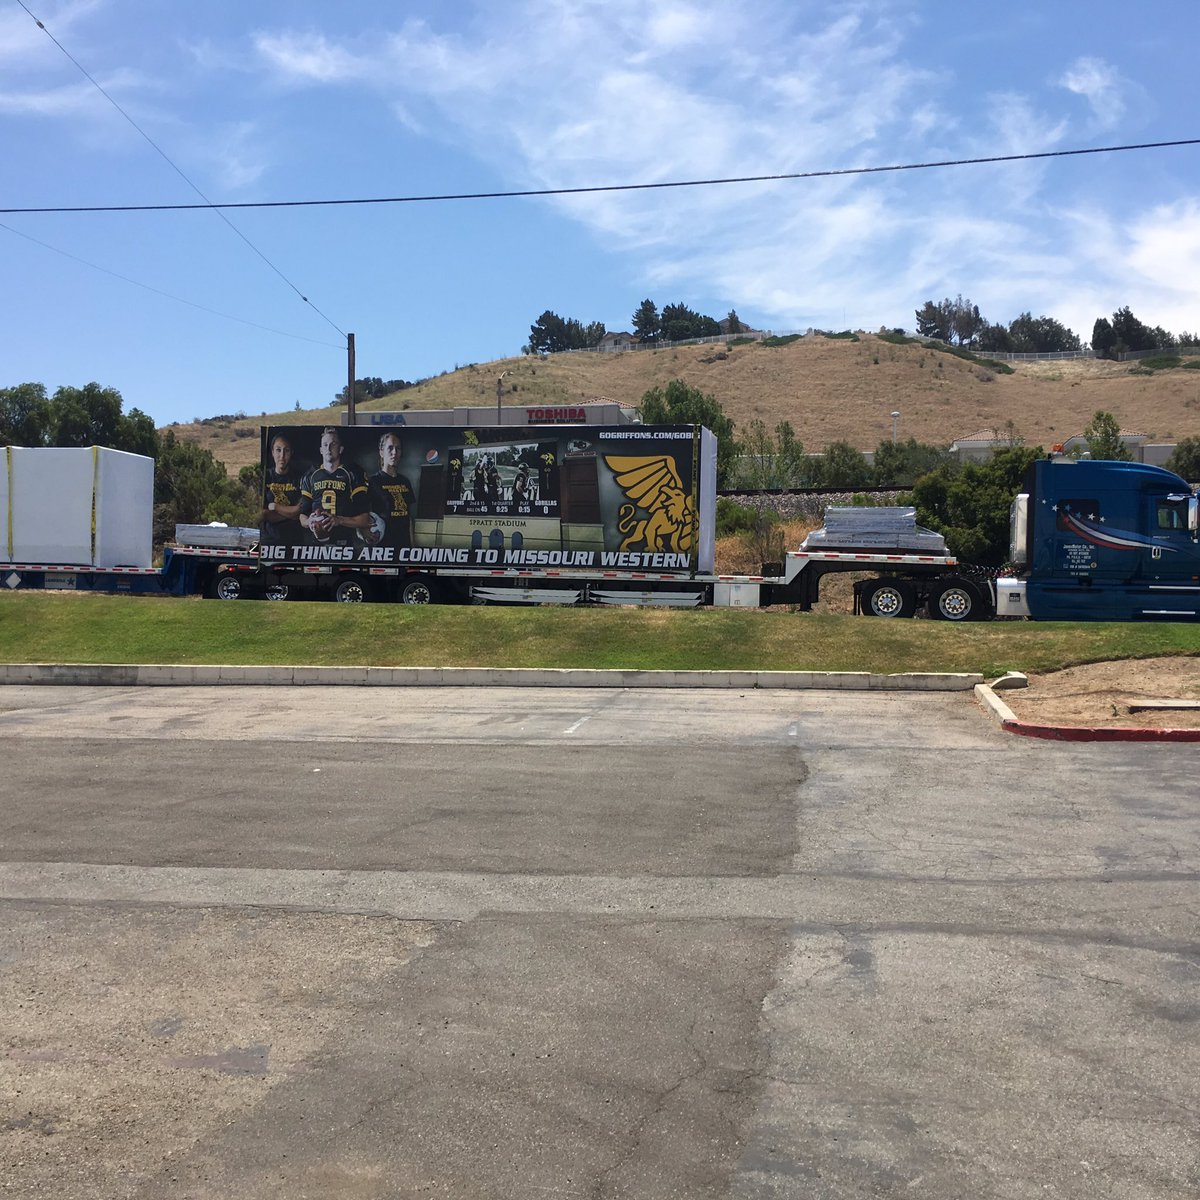 They're loading up the video scoreboard in California! #gobig #gogriffs https://t.co/O24bGLMiDJ